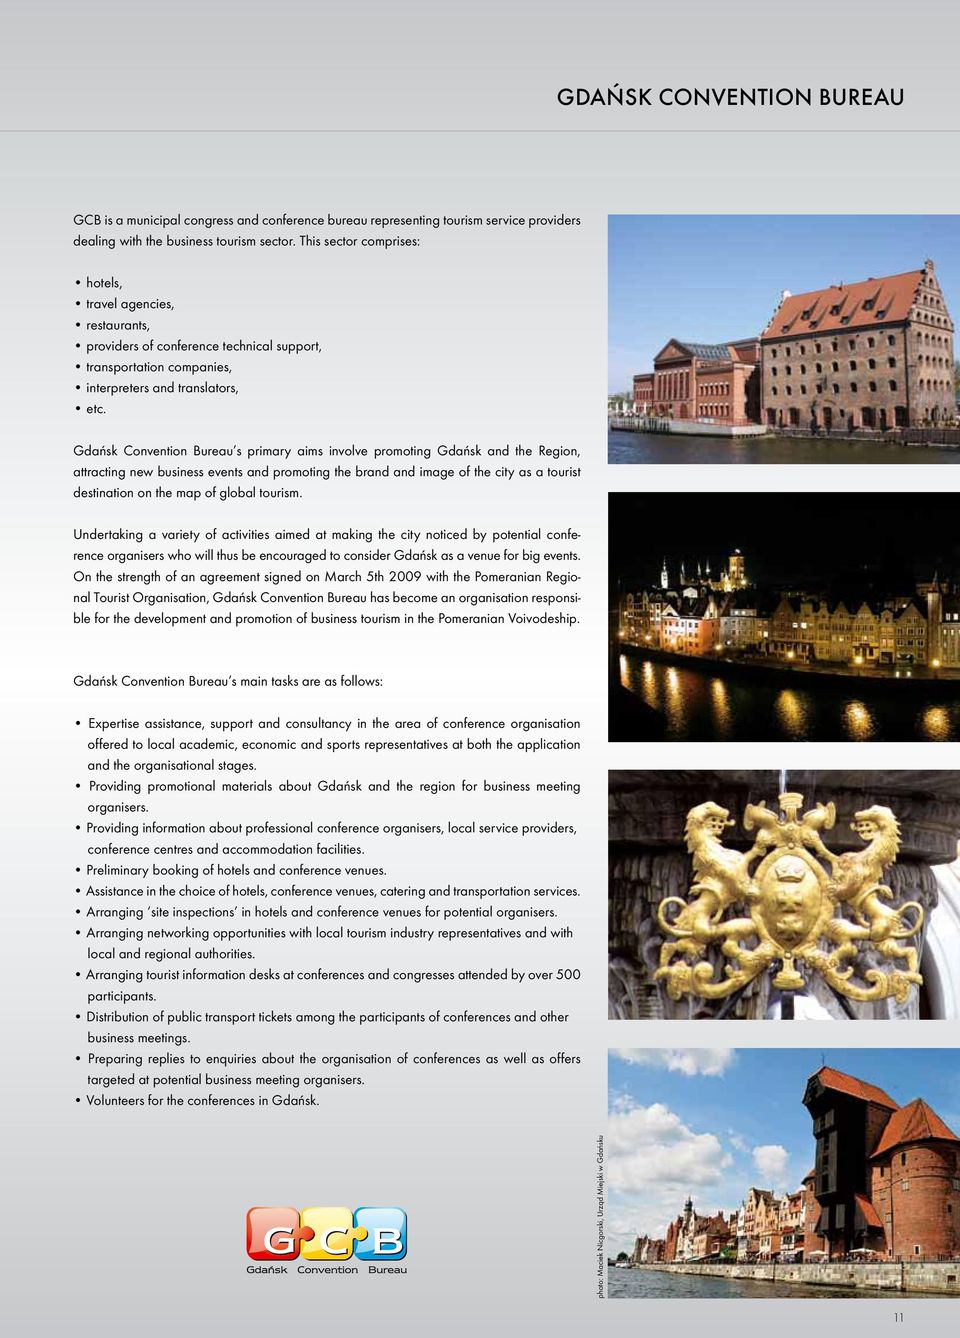 Gdańsk Convention Bureau s primary aims involve promoting Gdańsk and the Region, attracting new business events and promoting the brand and image of the city as a tourist destination on the map of